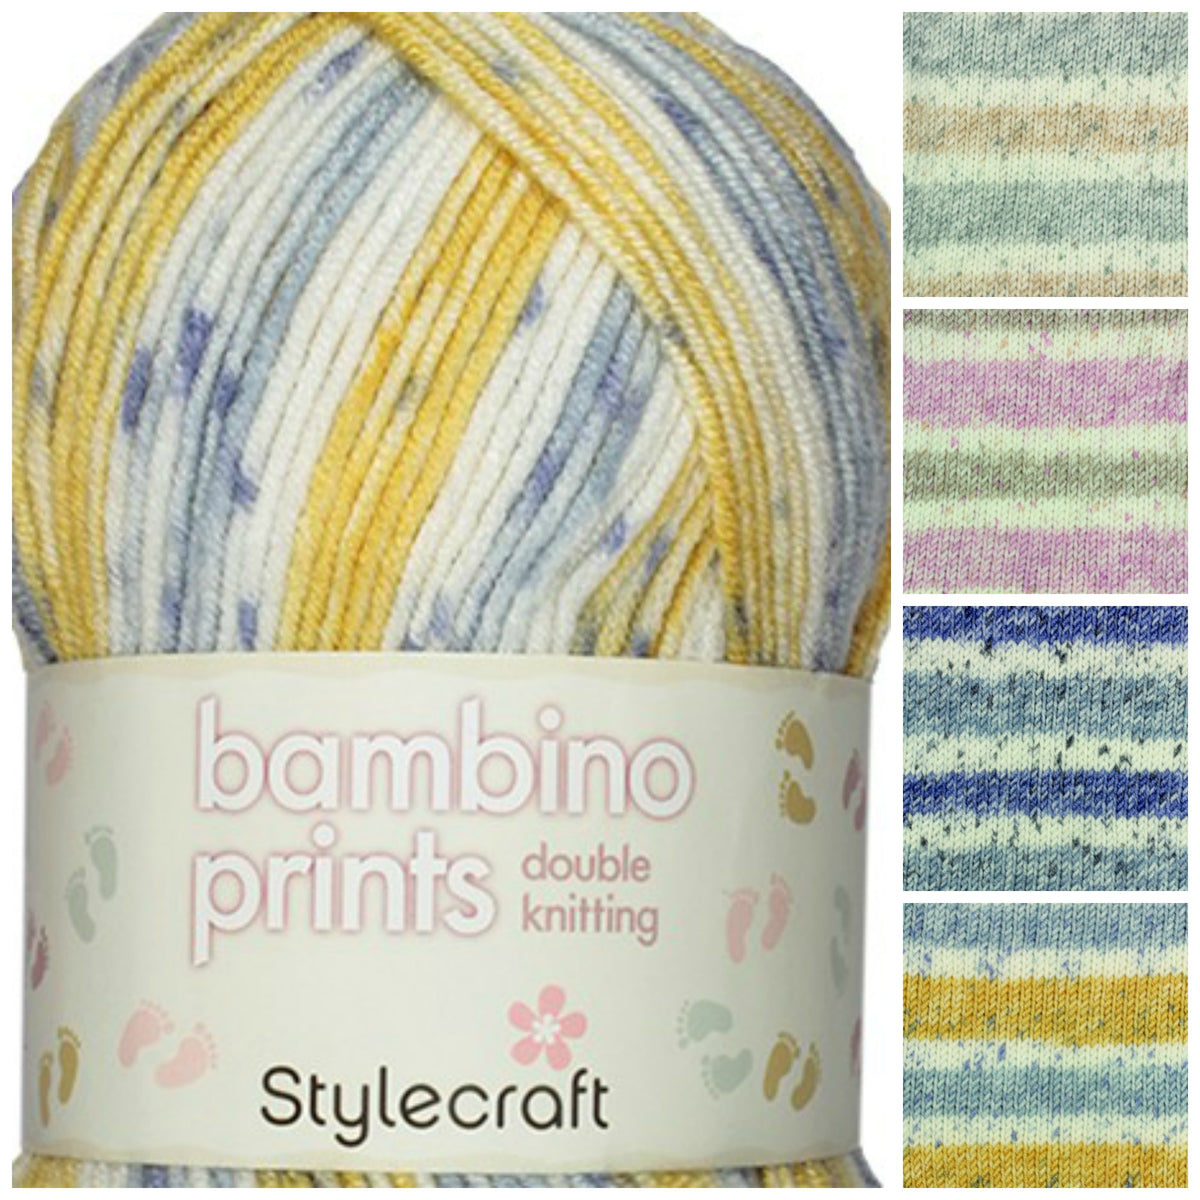 Stylecraft Bambino Prints Double knit yarn, 100% Acrylic, 100 grams